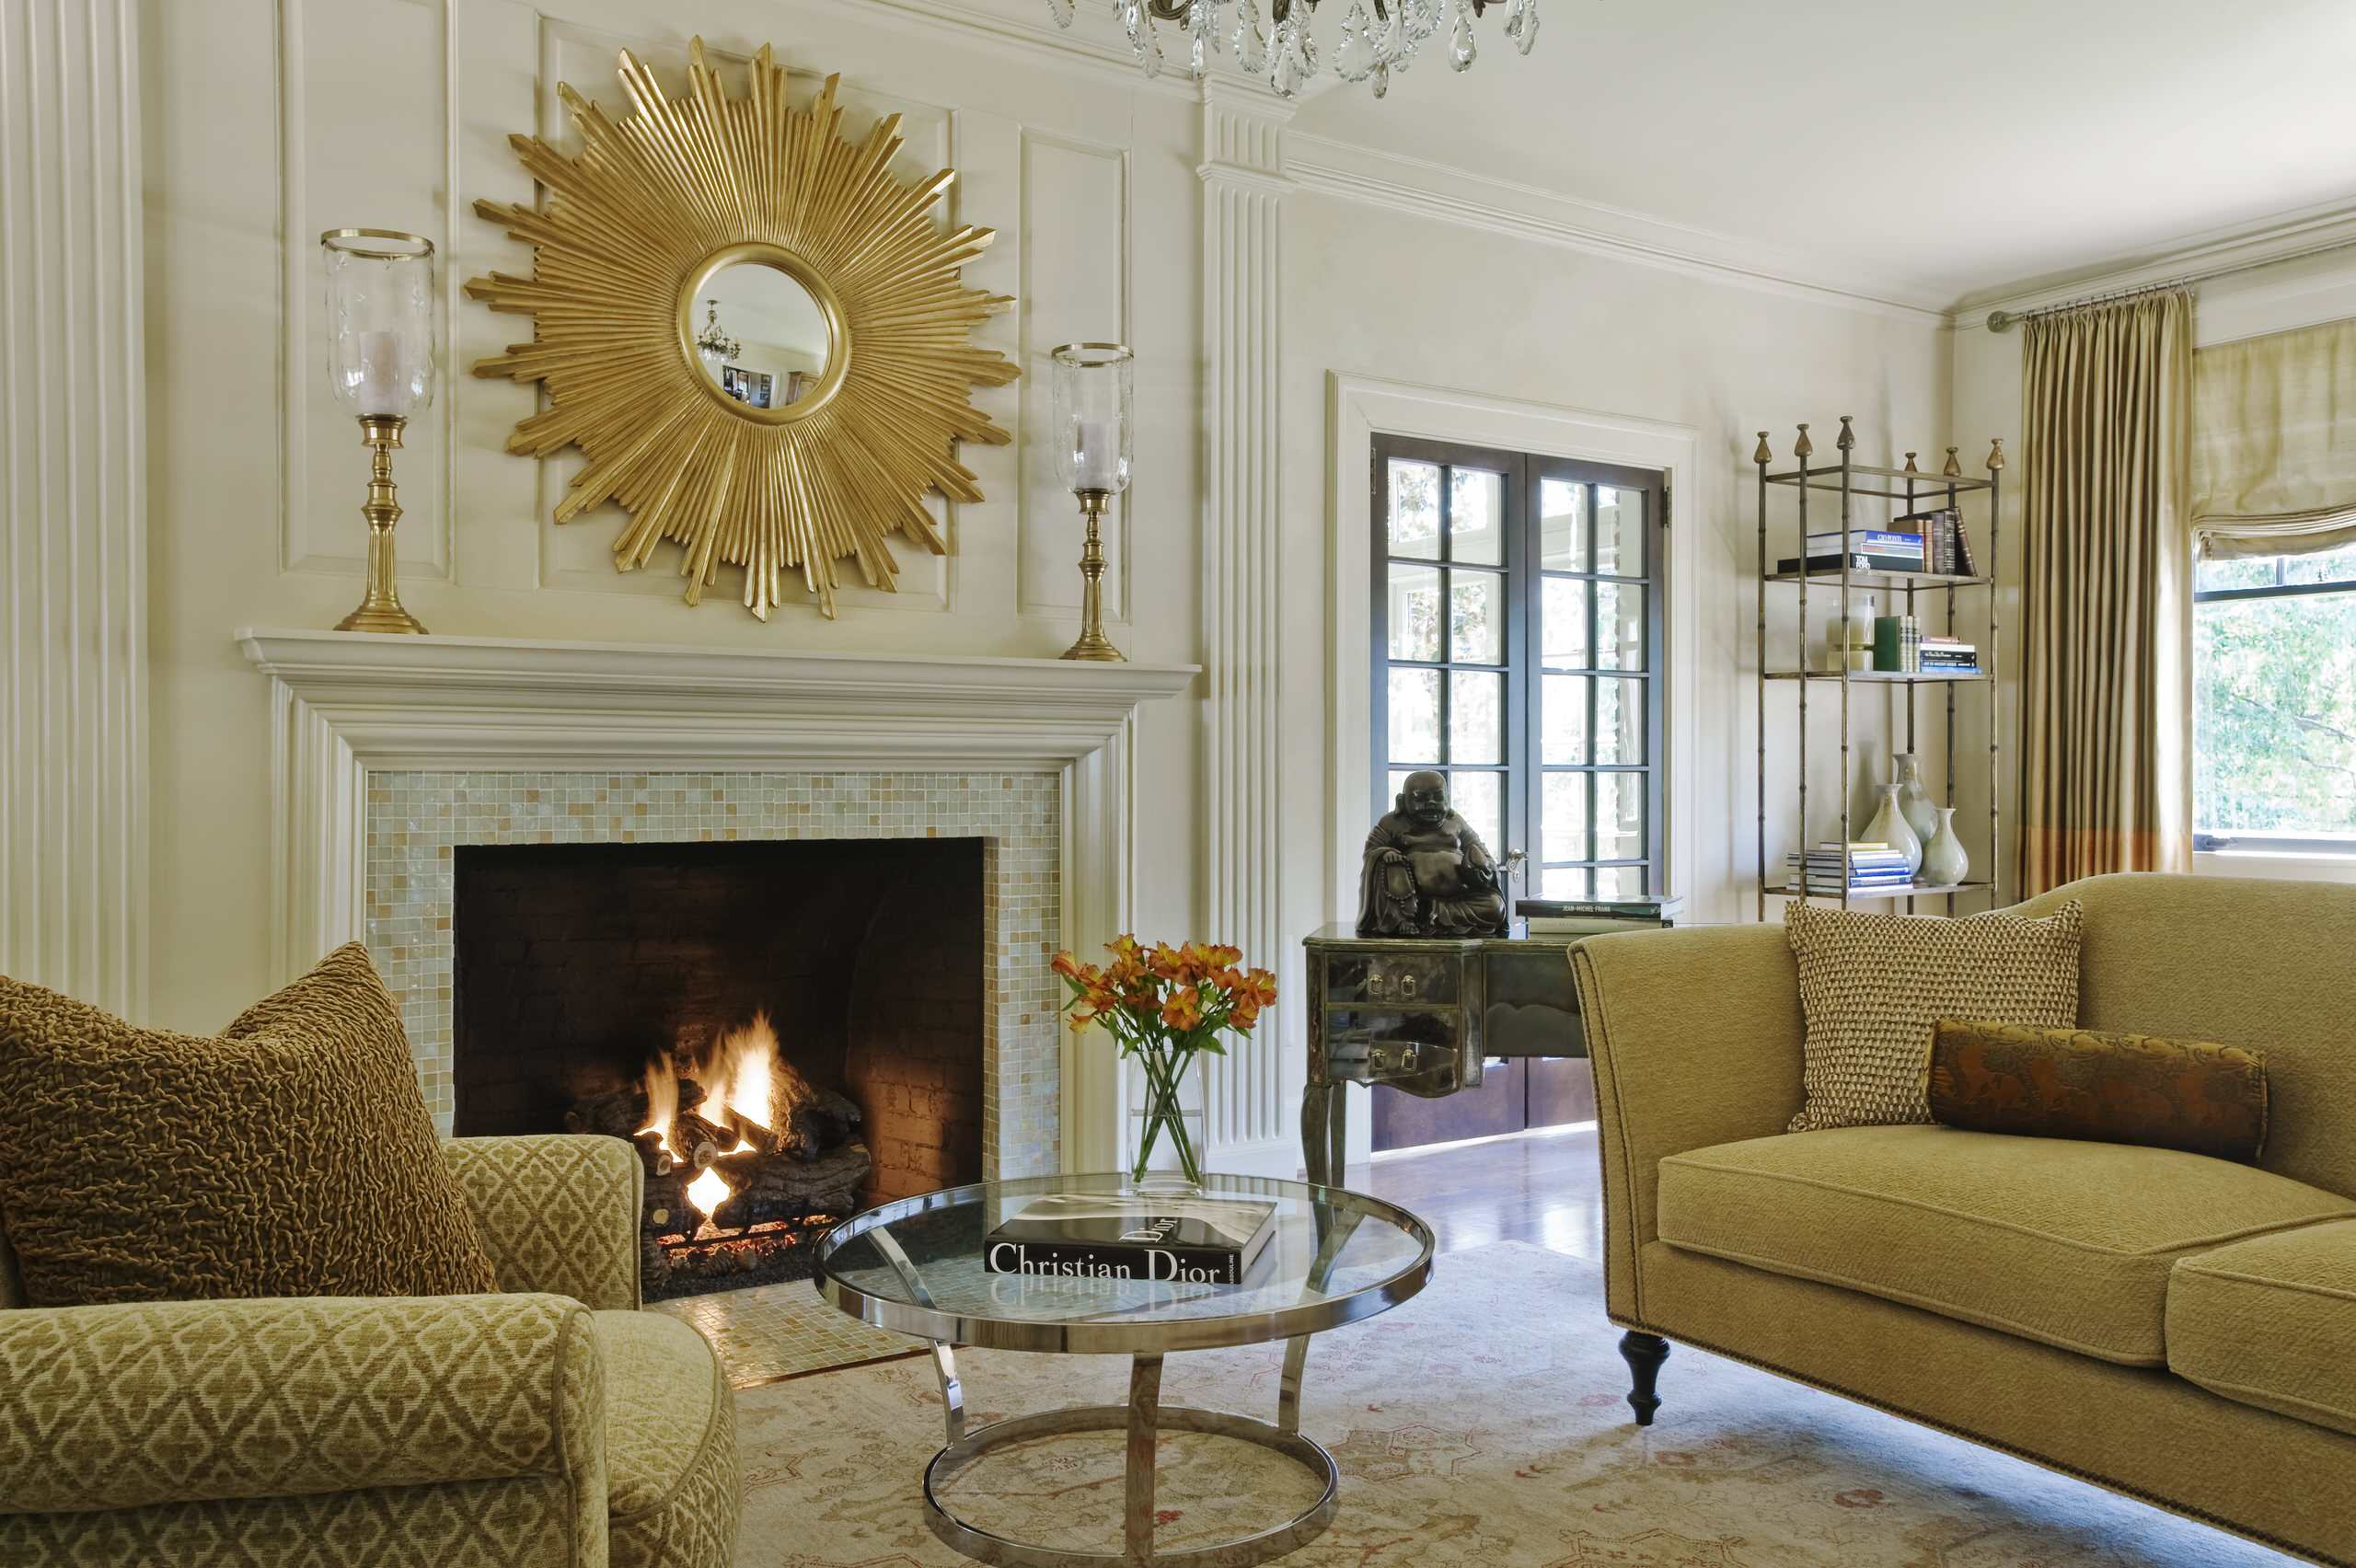 bedroom sunburst mirrors above fireplace plus glass candle